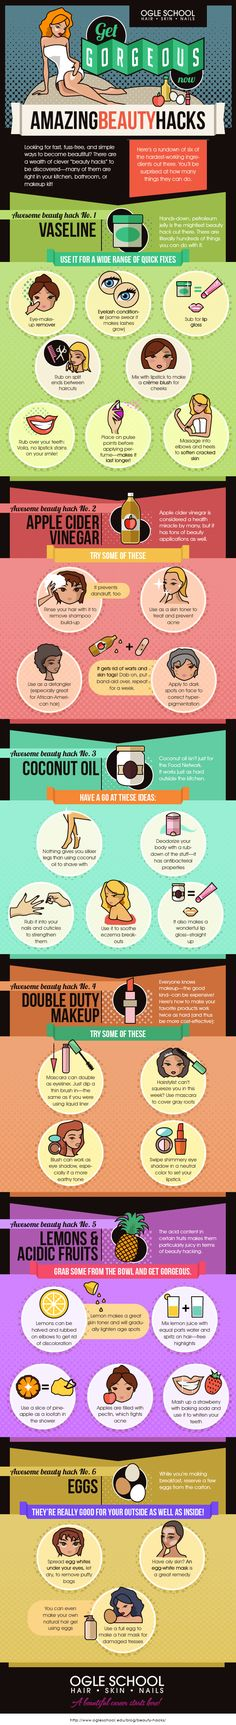 Body Care & Beauty Hacks